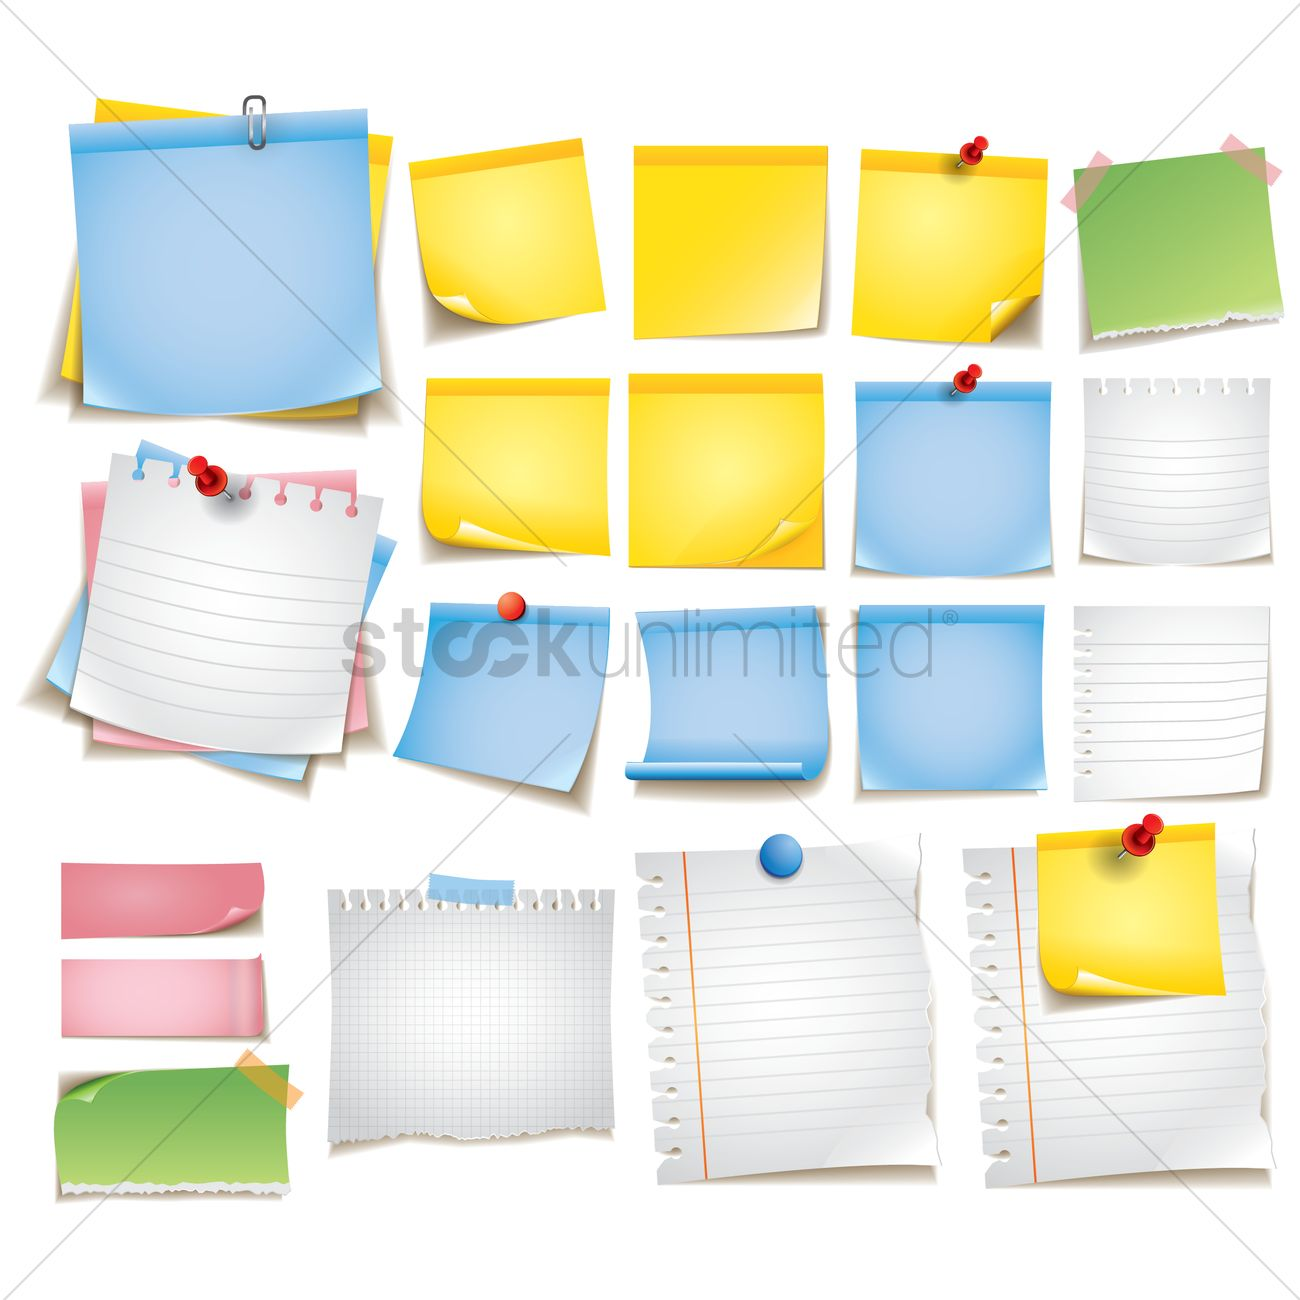 Free vector graphic sticky note note info paper free image on - Collection Of Sticky Notes Vector Graphic